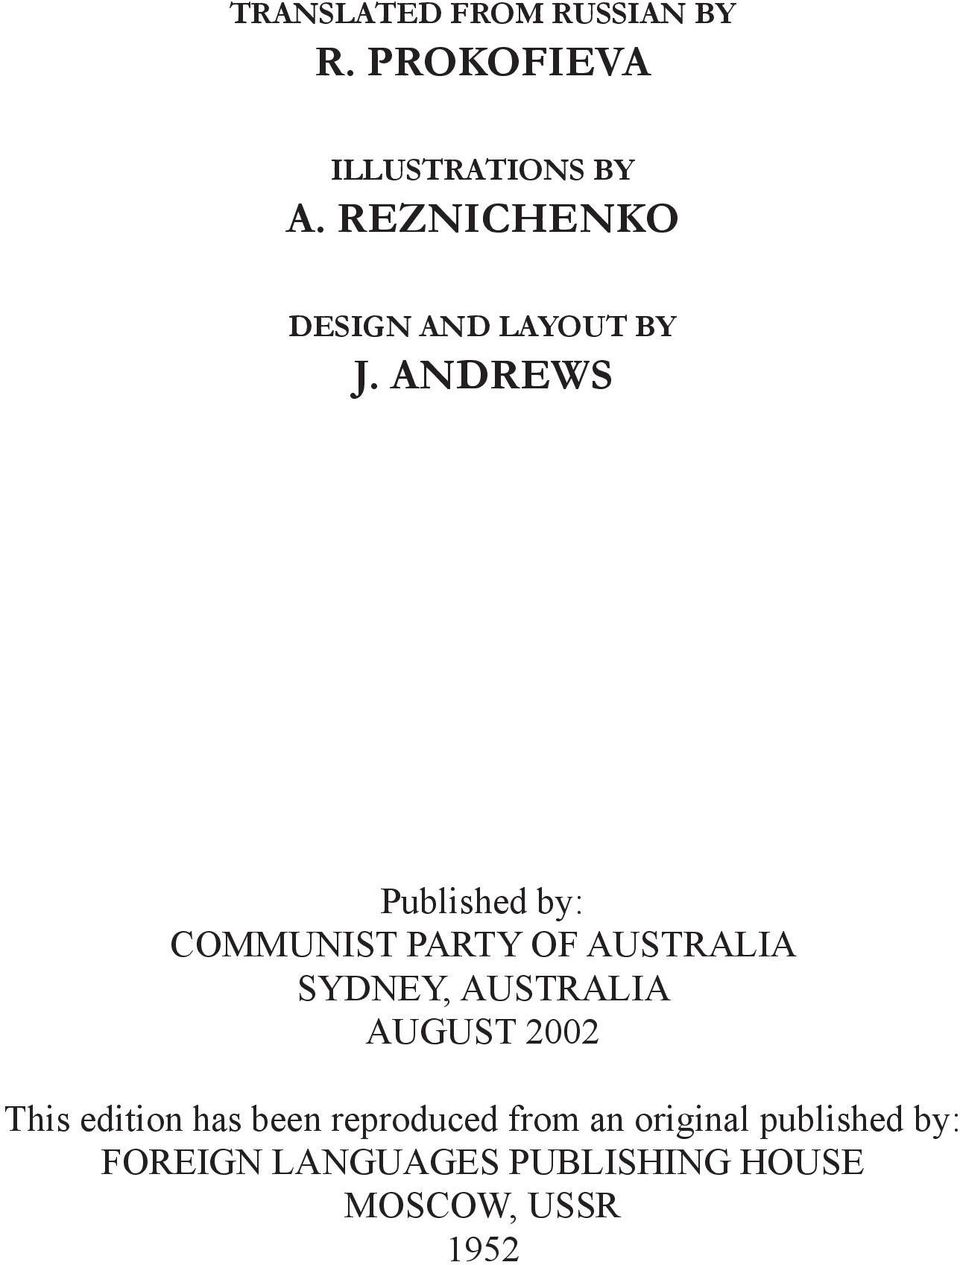 ANDREWS Published by: COMMUNIST PARTY OF AUSTRALIA SYDNEY, AUSTRALIA